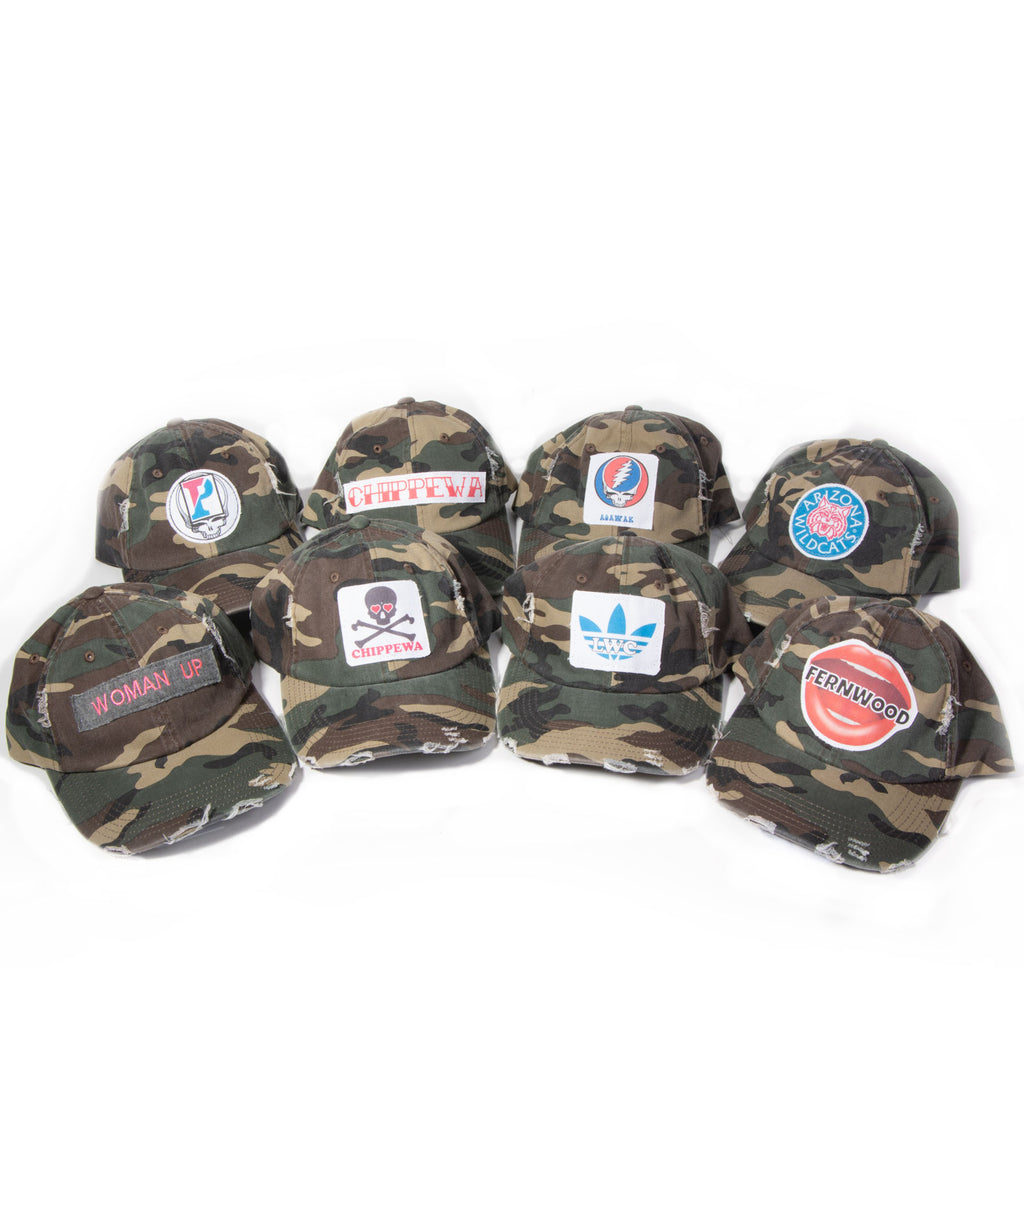 Tee 2 You Camo Embroidered Hat